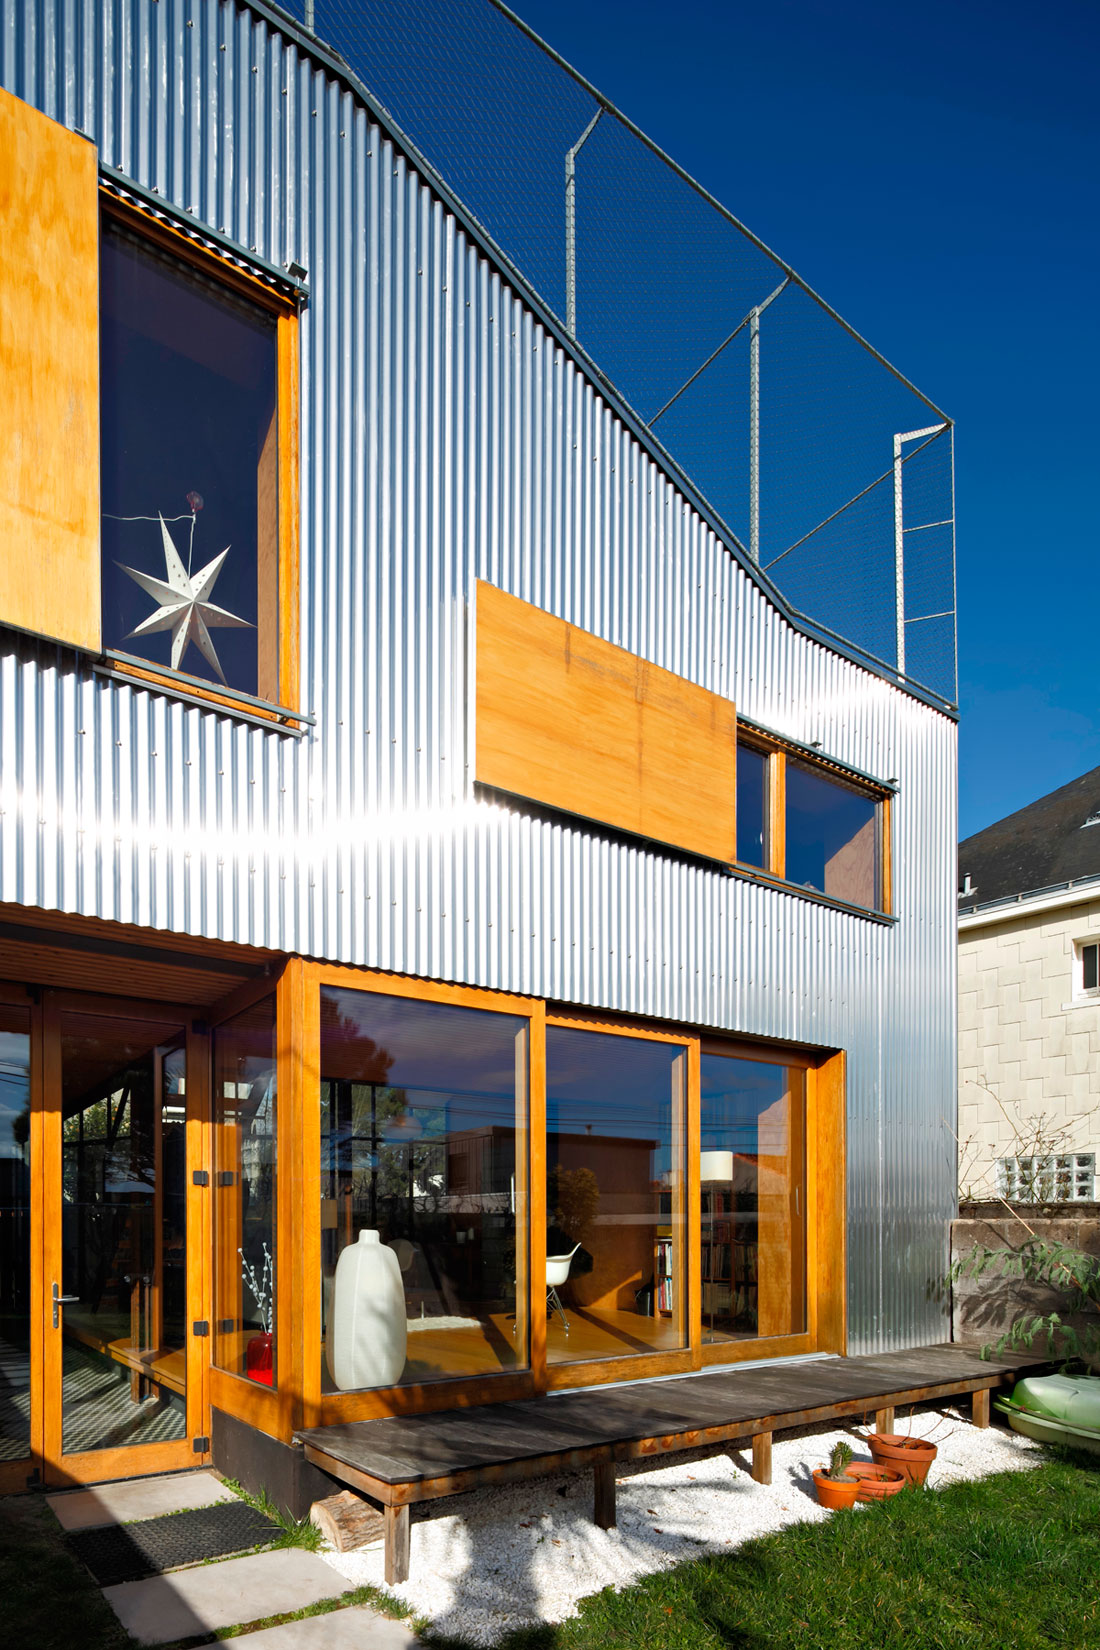 House Extension in Nantes by Mabire Reich Architects (5)